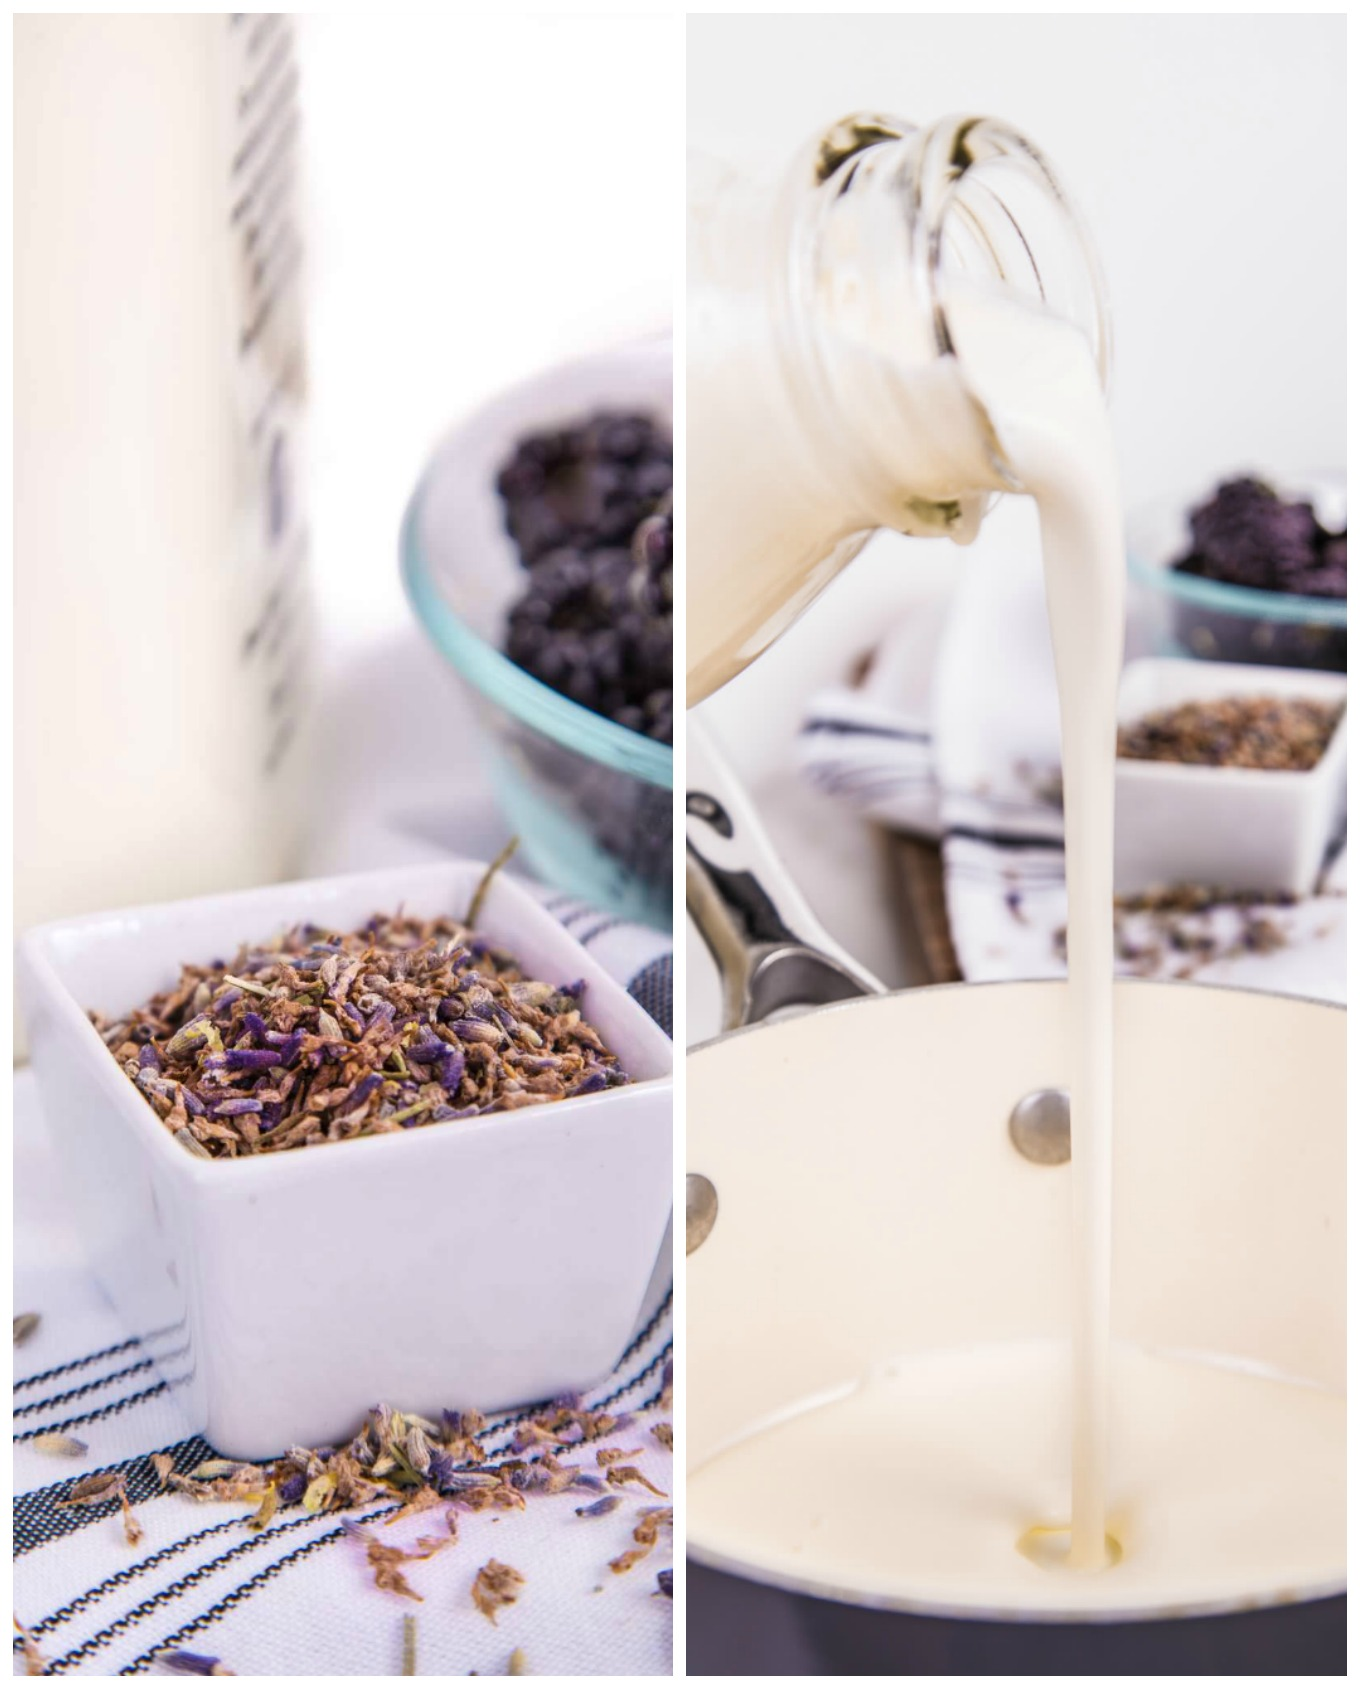 Making the Lavender Cream for the Paletas